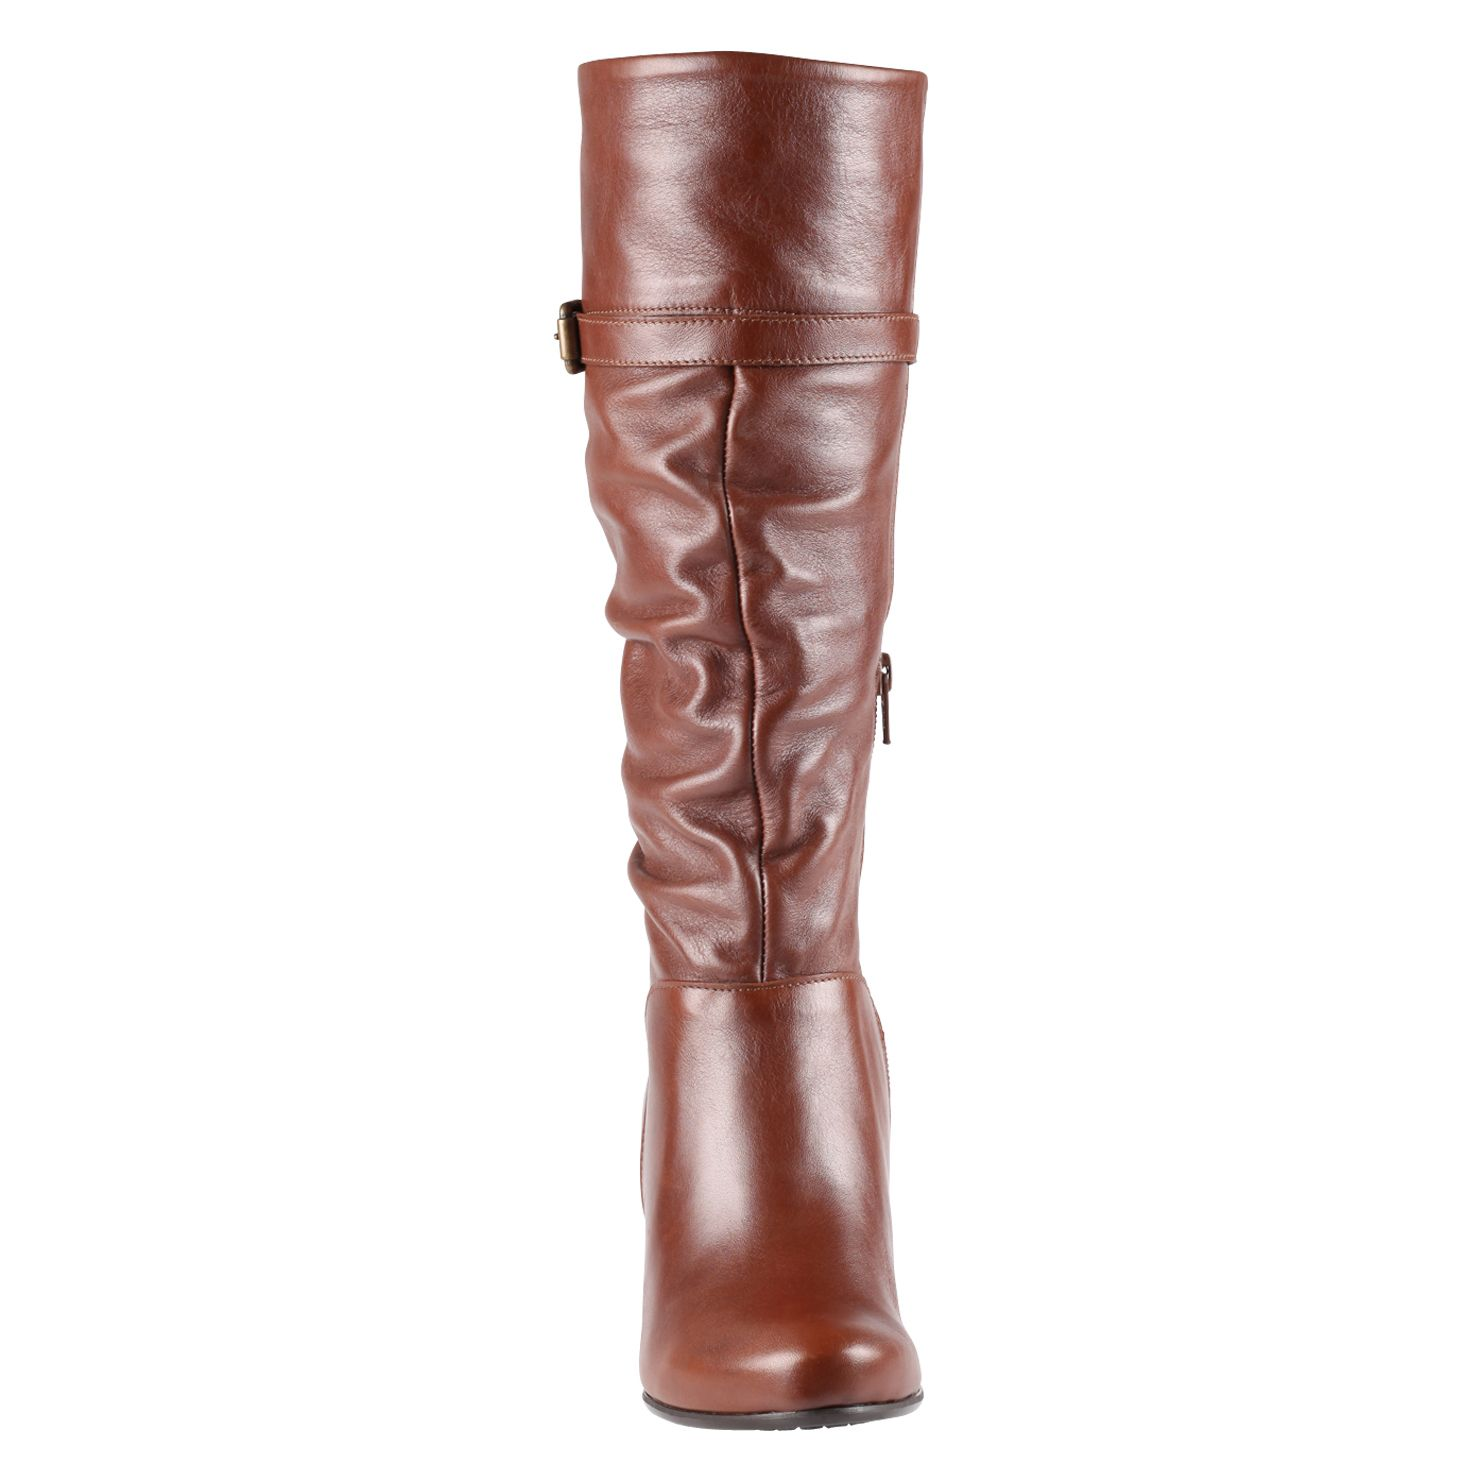 Kosarek block almond toe boots